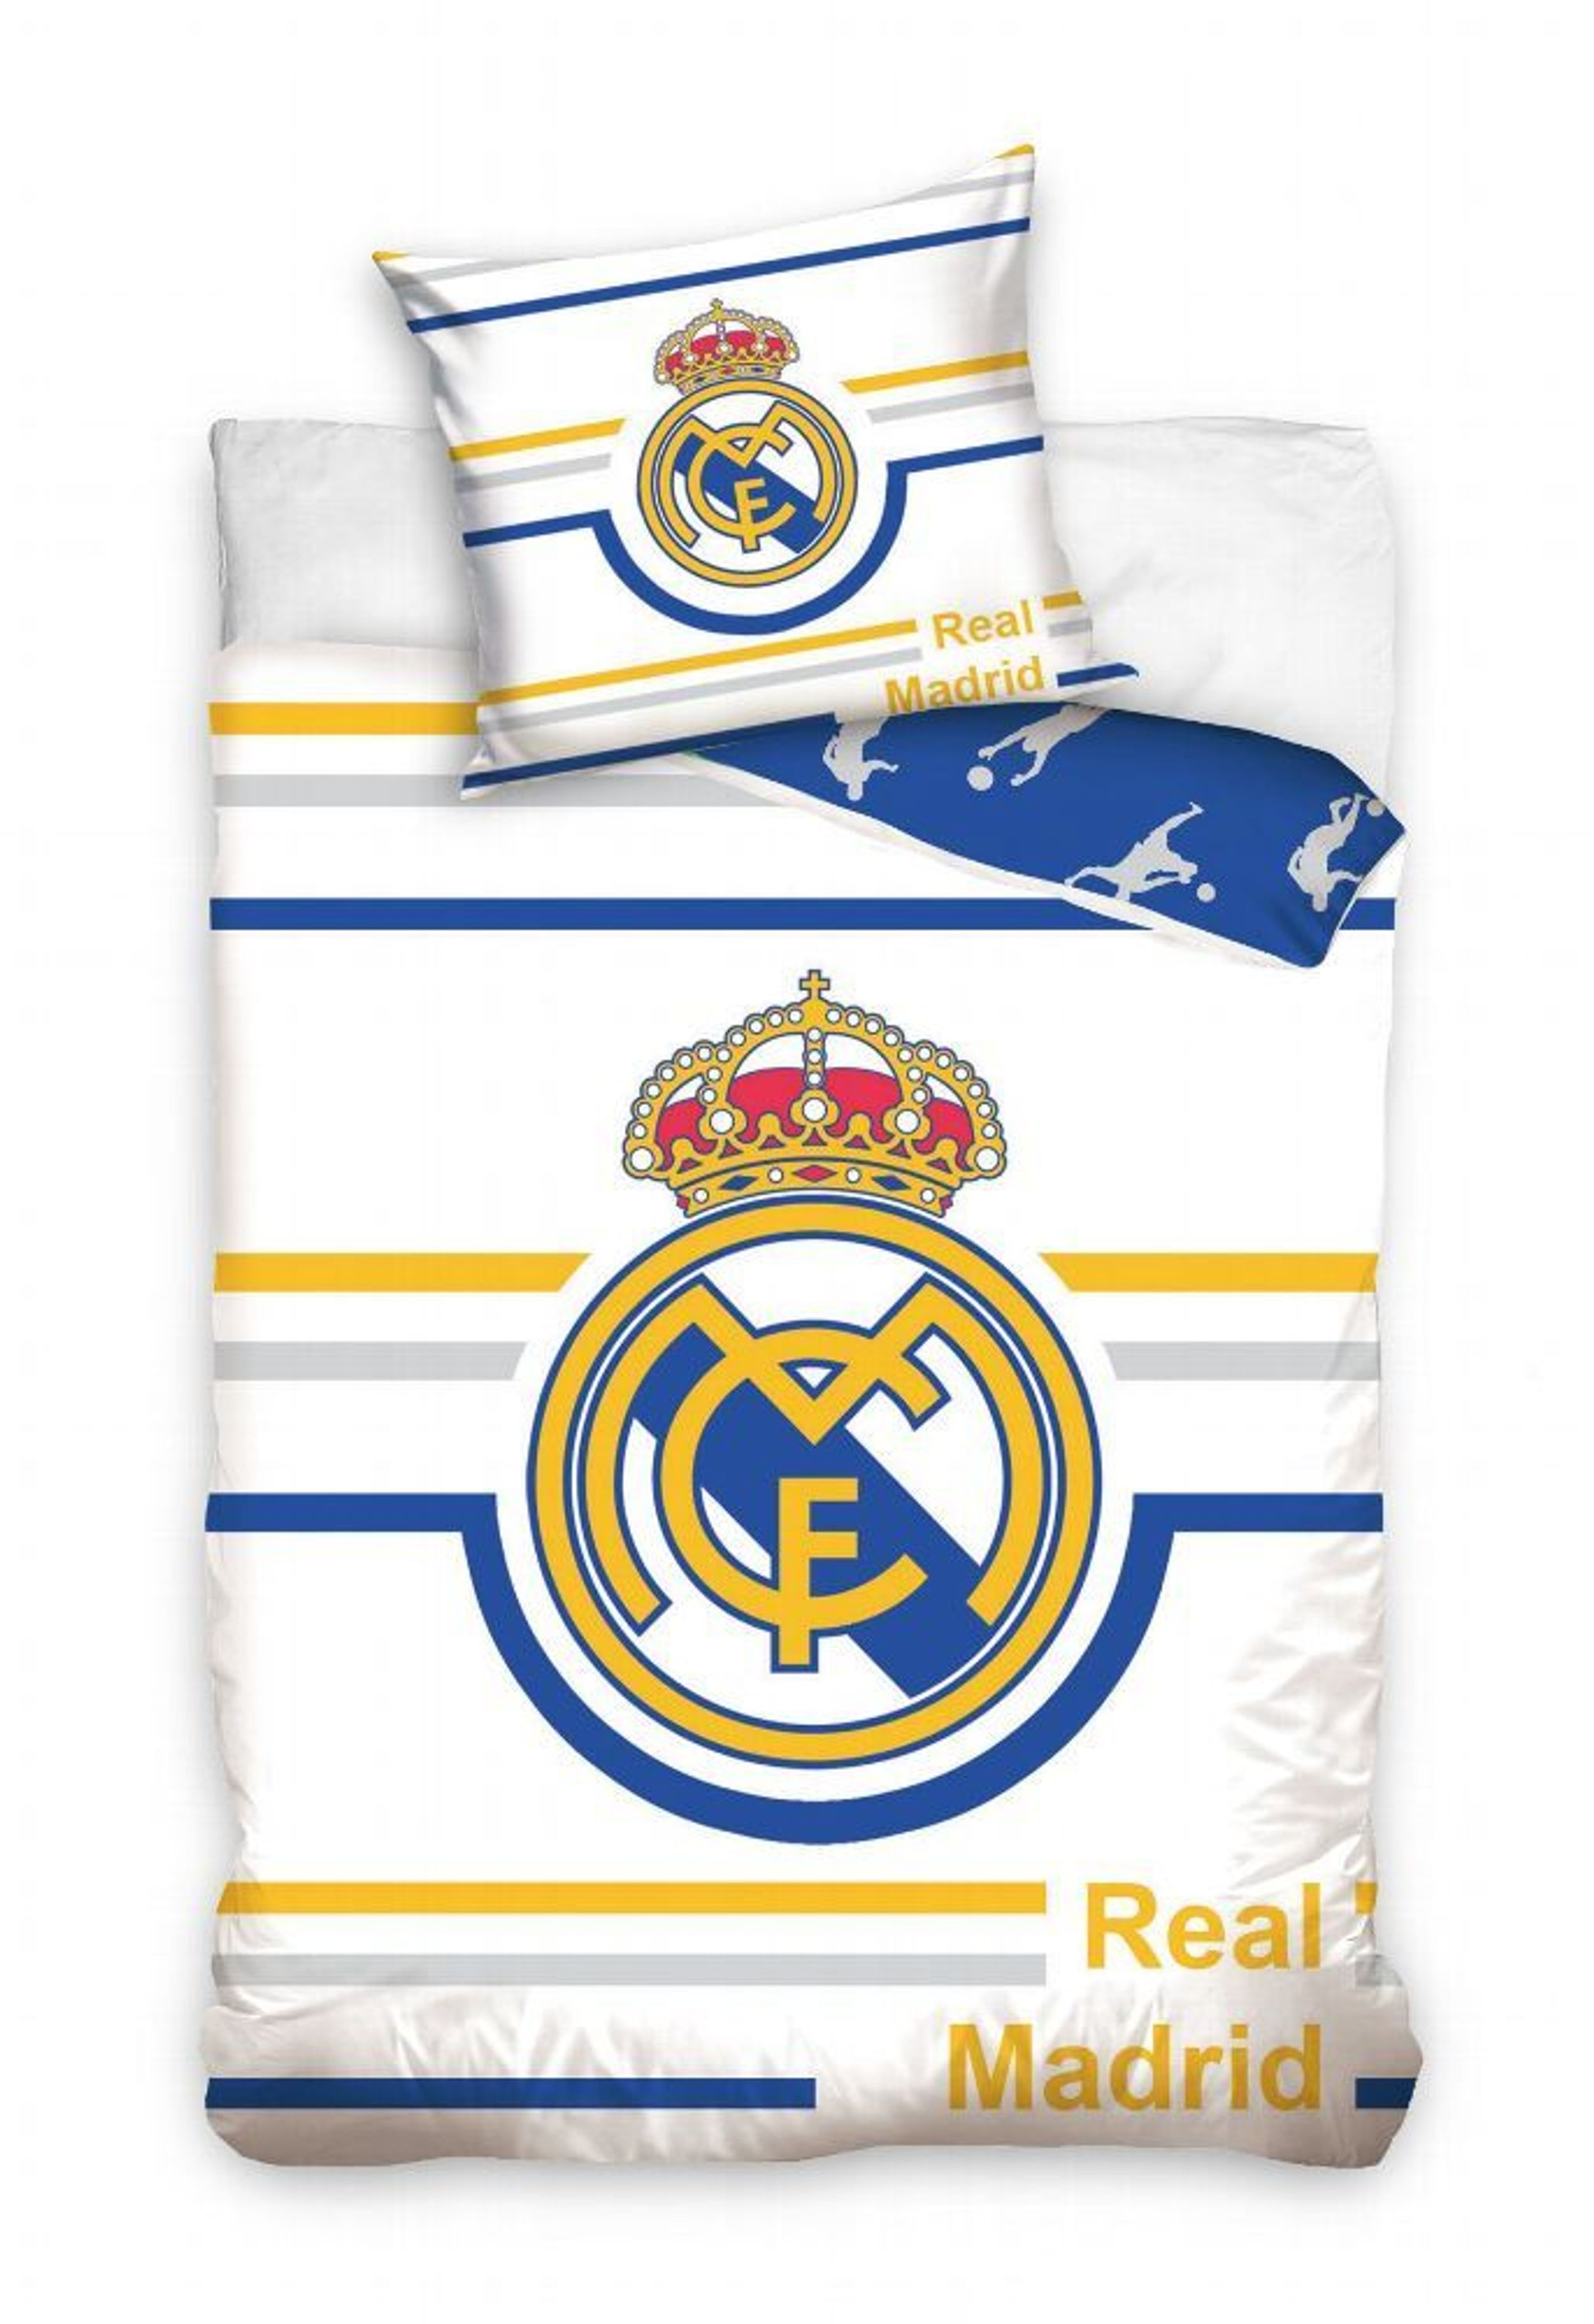 Fußball Bettwäsche Real Madrid Bed Linen Football Ronaldo Bale